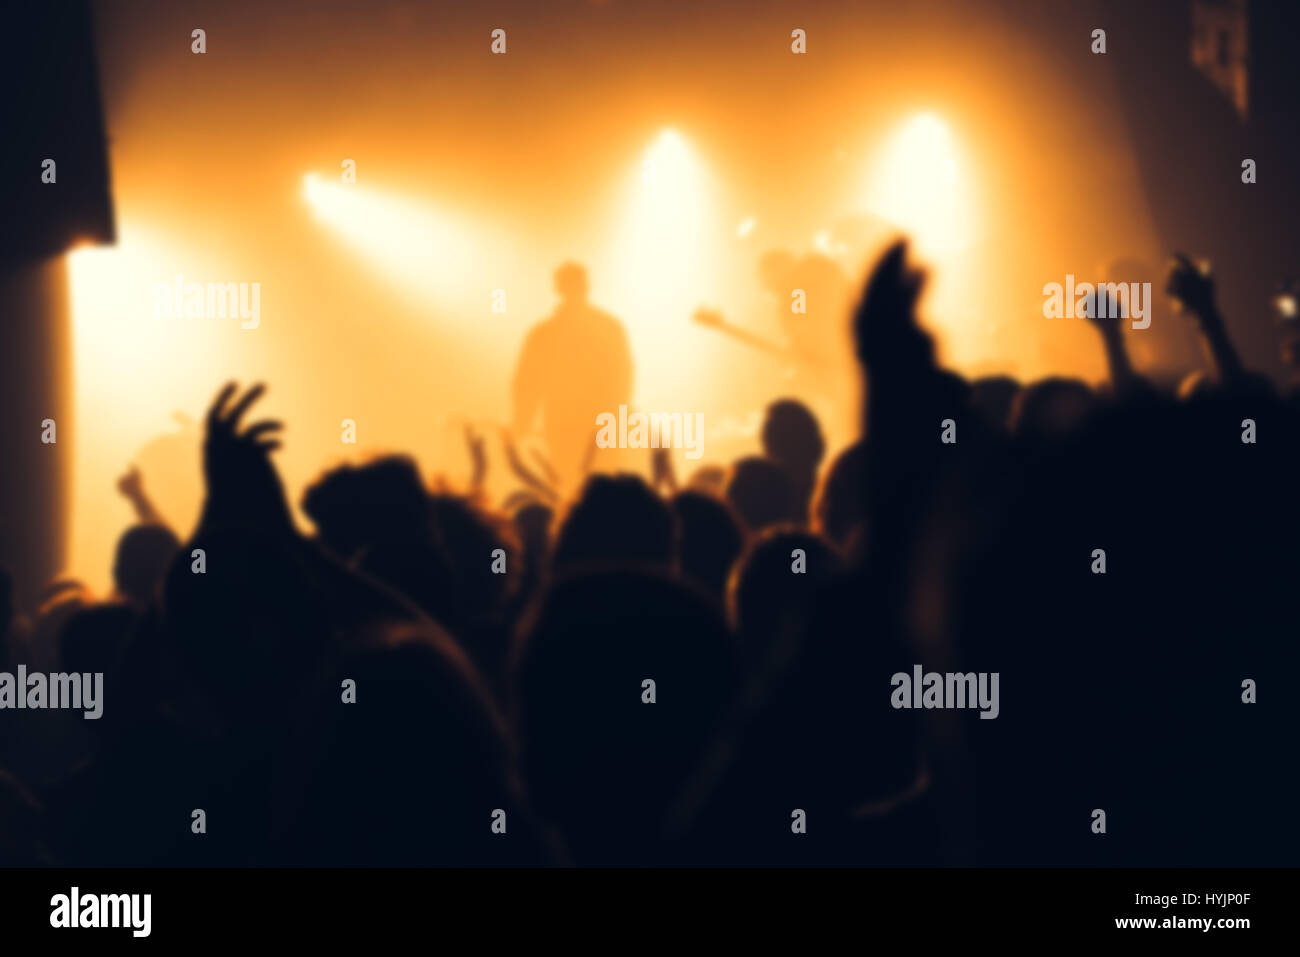 Pics photos rock concert background - Blur Defocused Concert Crowd As Abstract Background People At Popular Rock Music Live Performance